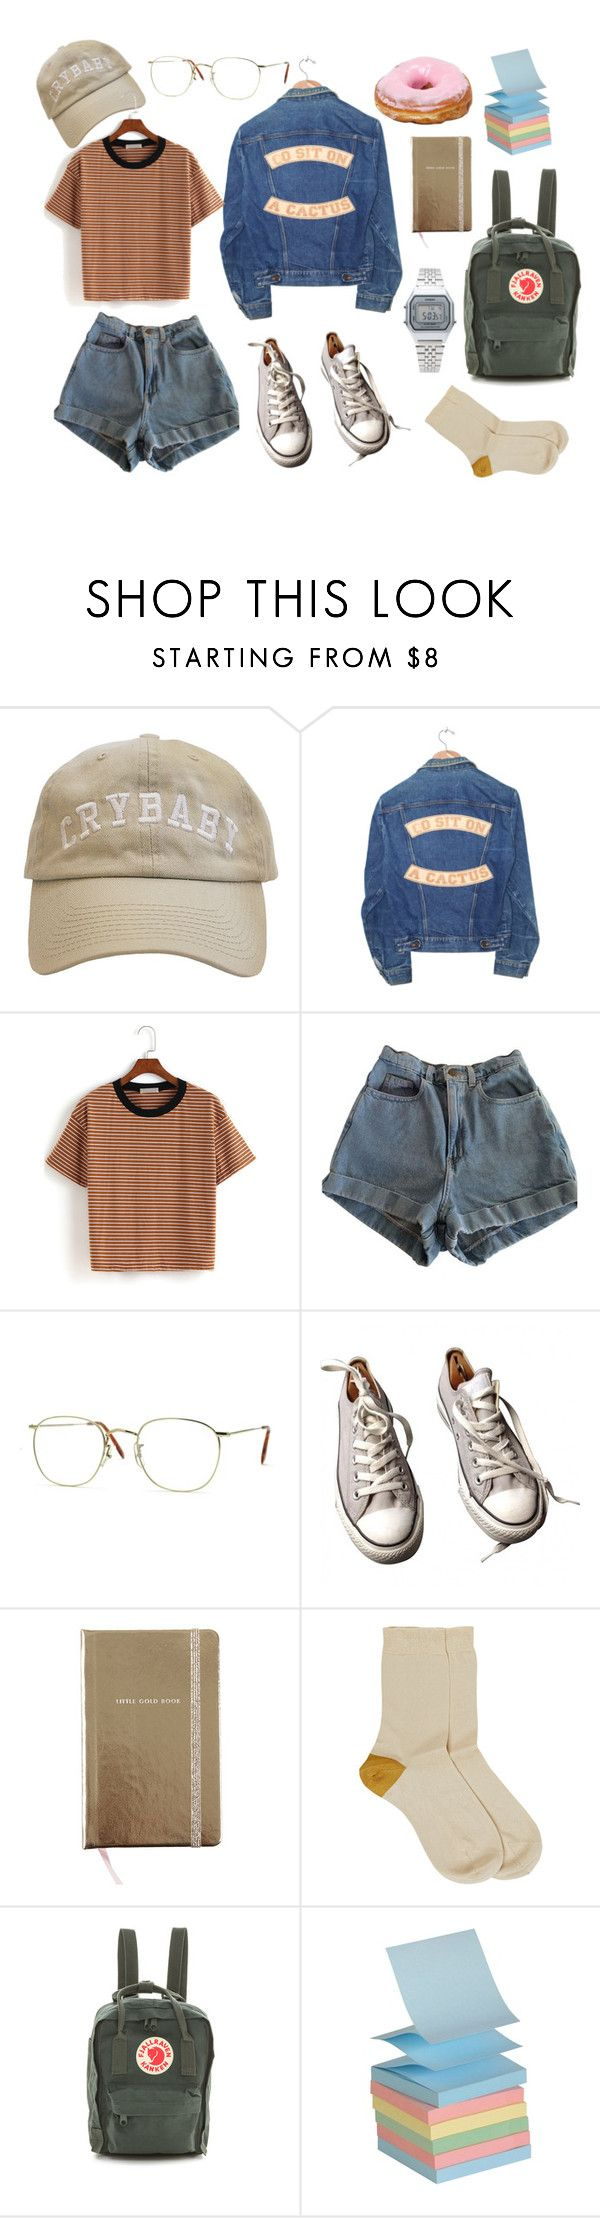 """school outfit"" by shashlicheck ❤ liked on Polyvore featuring Understated Leather, American Apparel, Converse, Kate Spade, Maria La Rosa, Fjällräven and Casio"